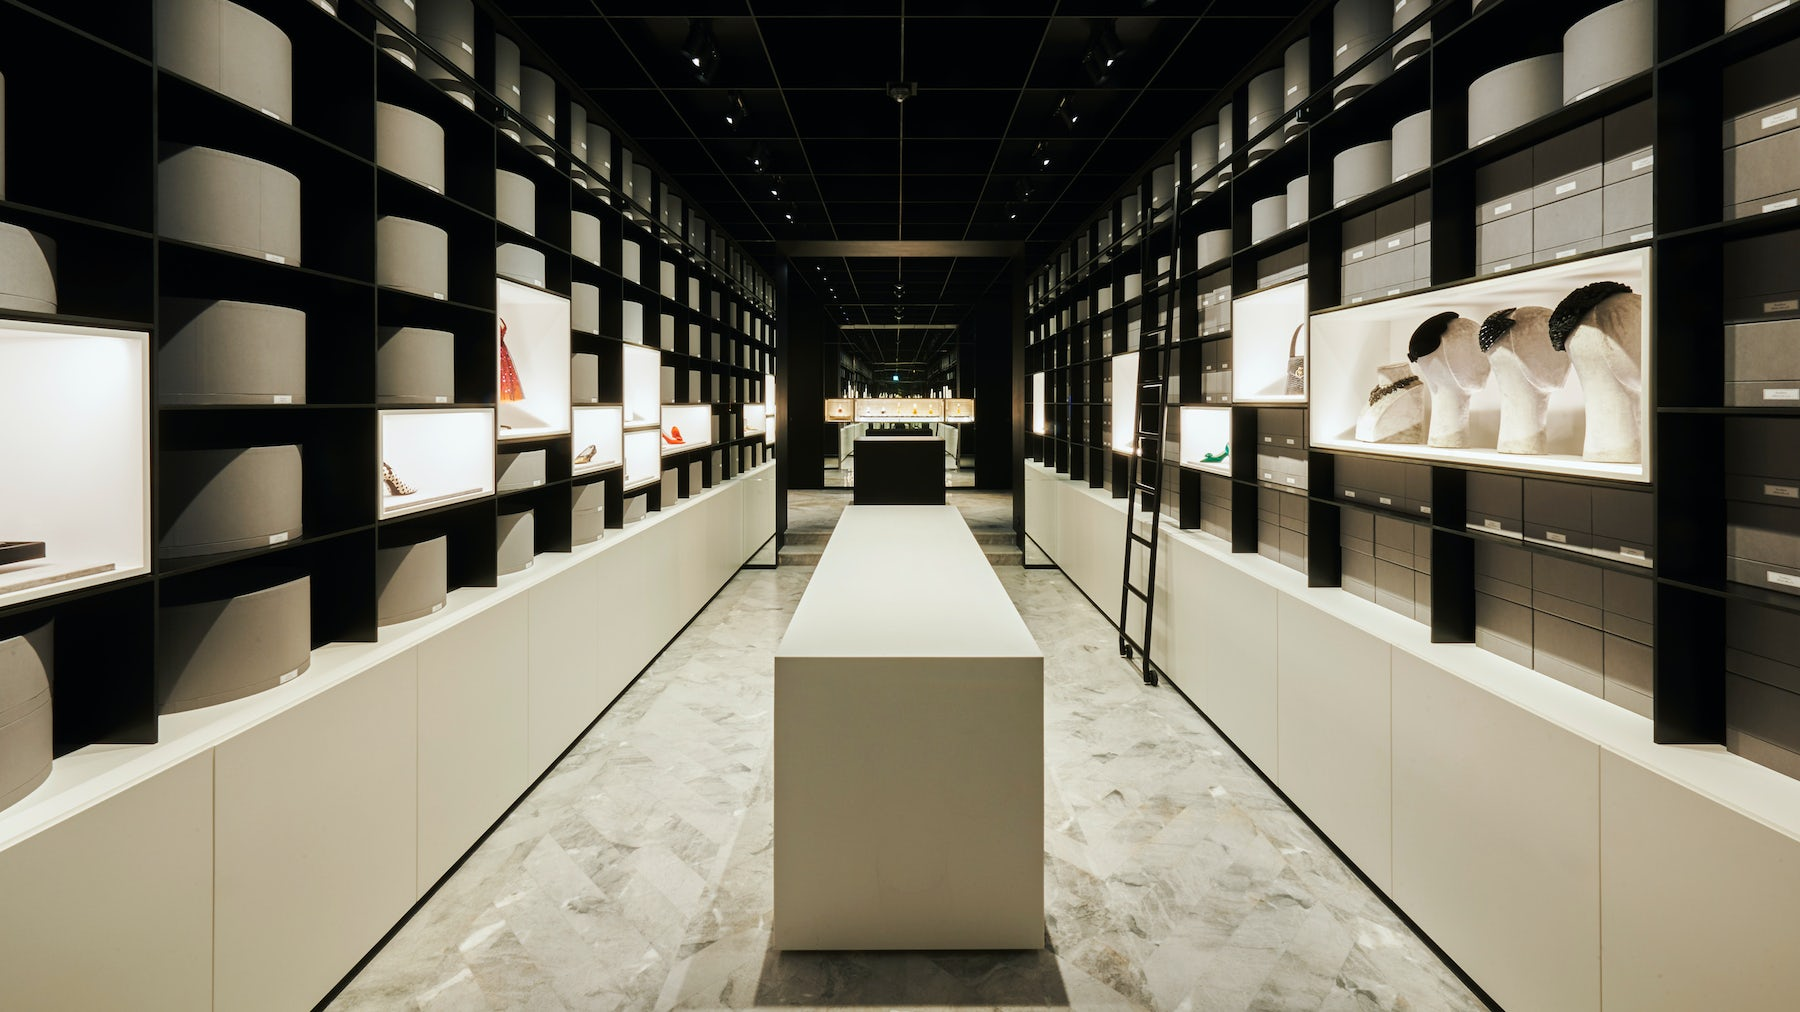 The accessories room at Dior's new archive | Source: Courtesy